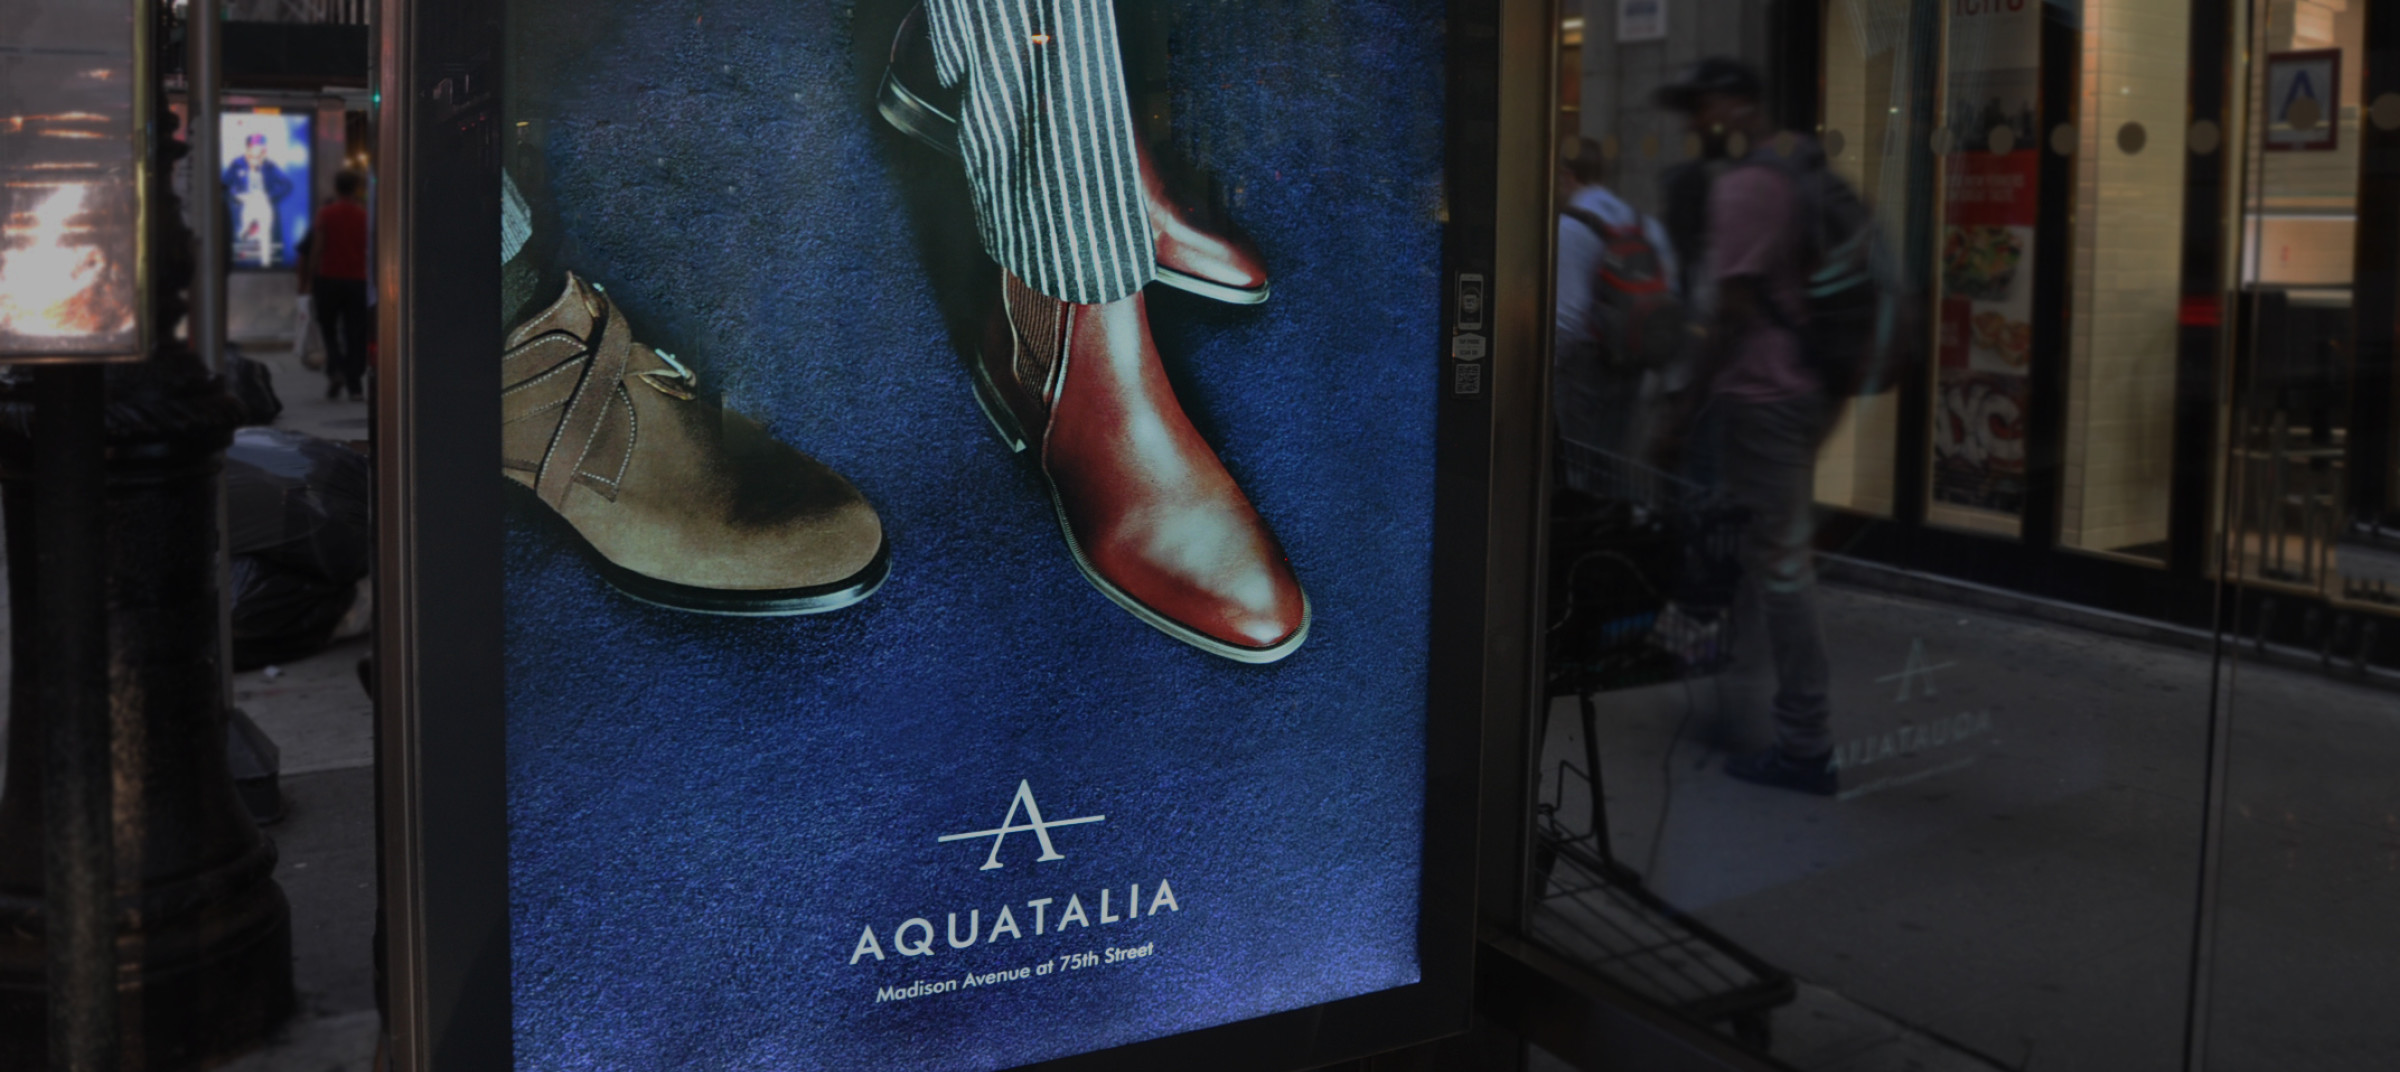 Aquatalia's mens collection in New York City's bus stops by DTE Studio.